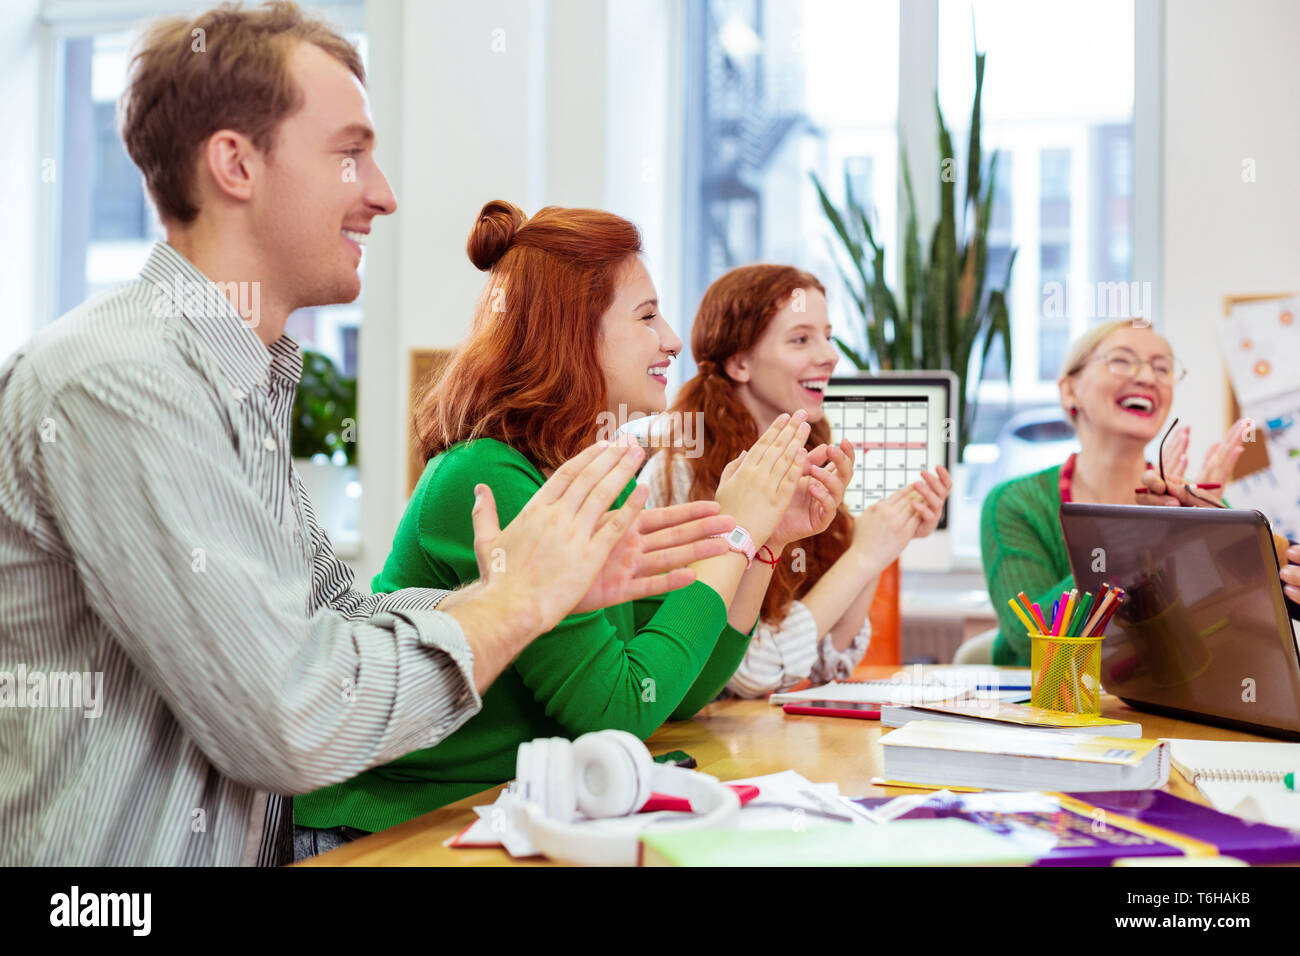 Delighted happy people showing their approval with applause - Stock Image